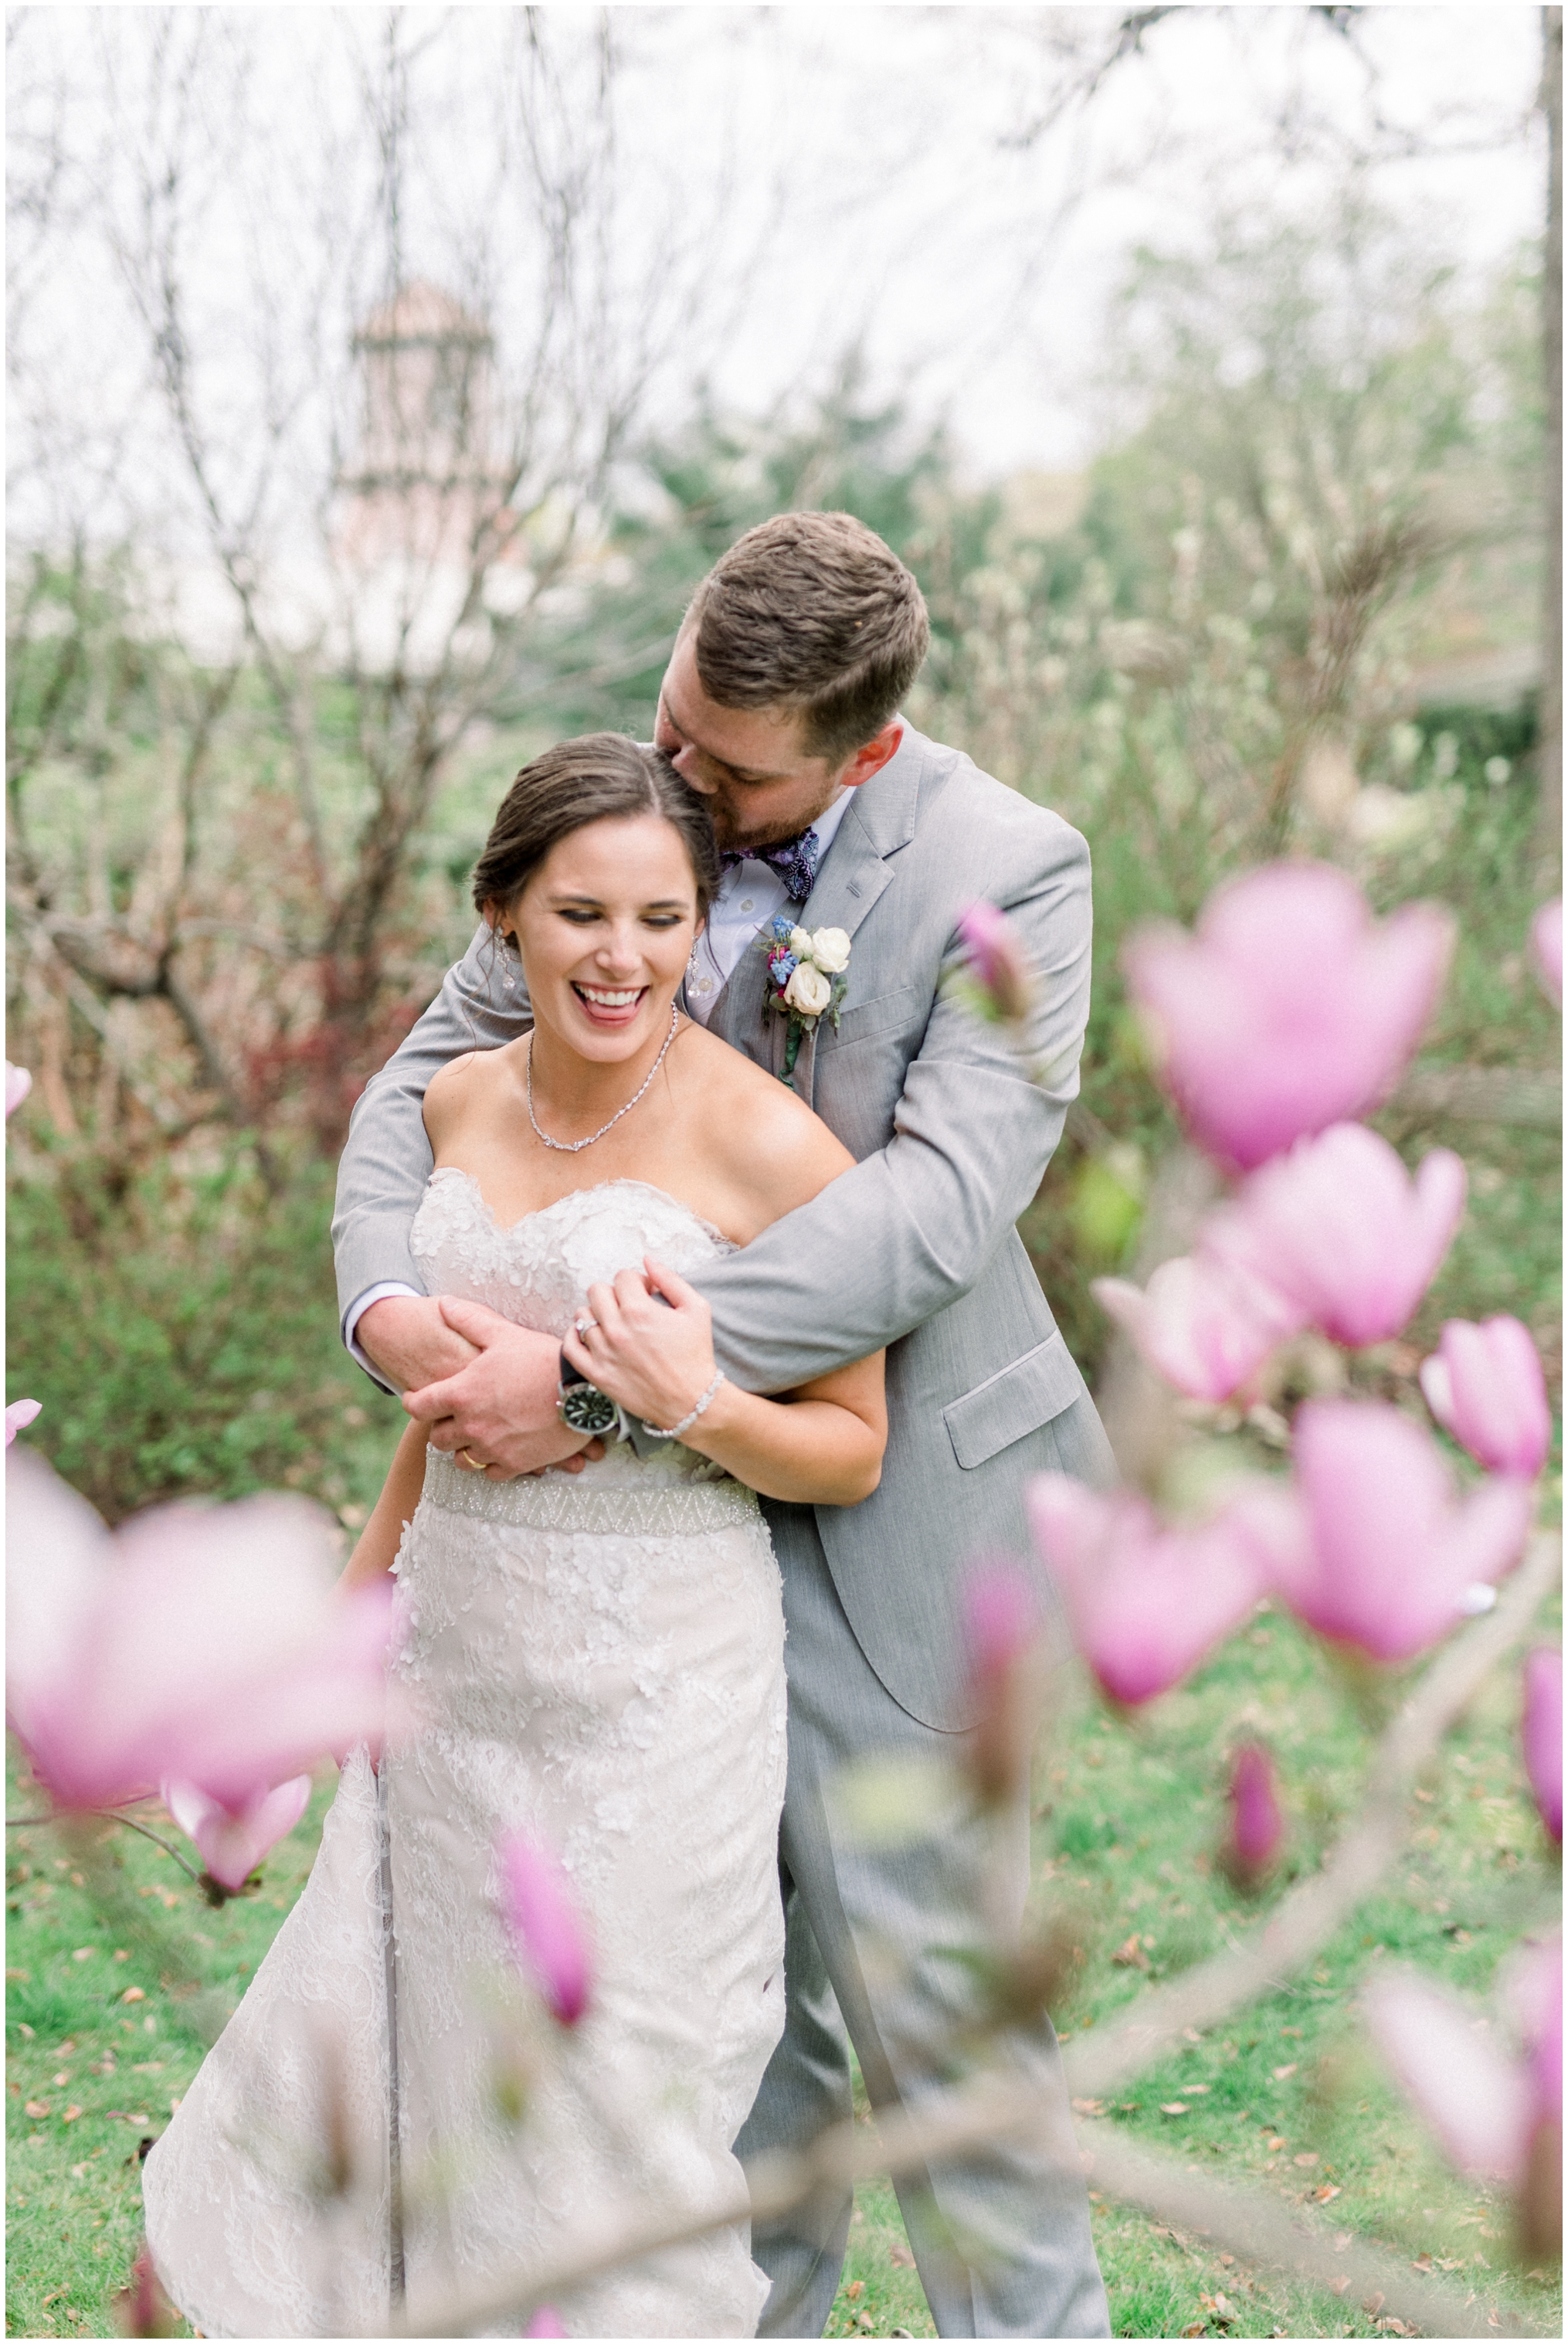 Krista Brackin Photography | April Wedding at The Carriage House at Rockwood Park_0088.jpg